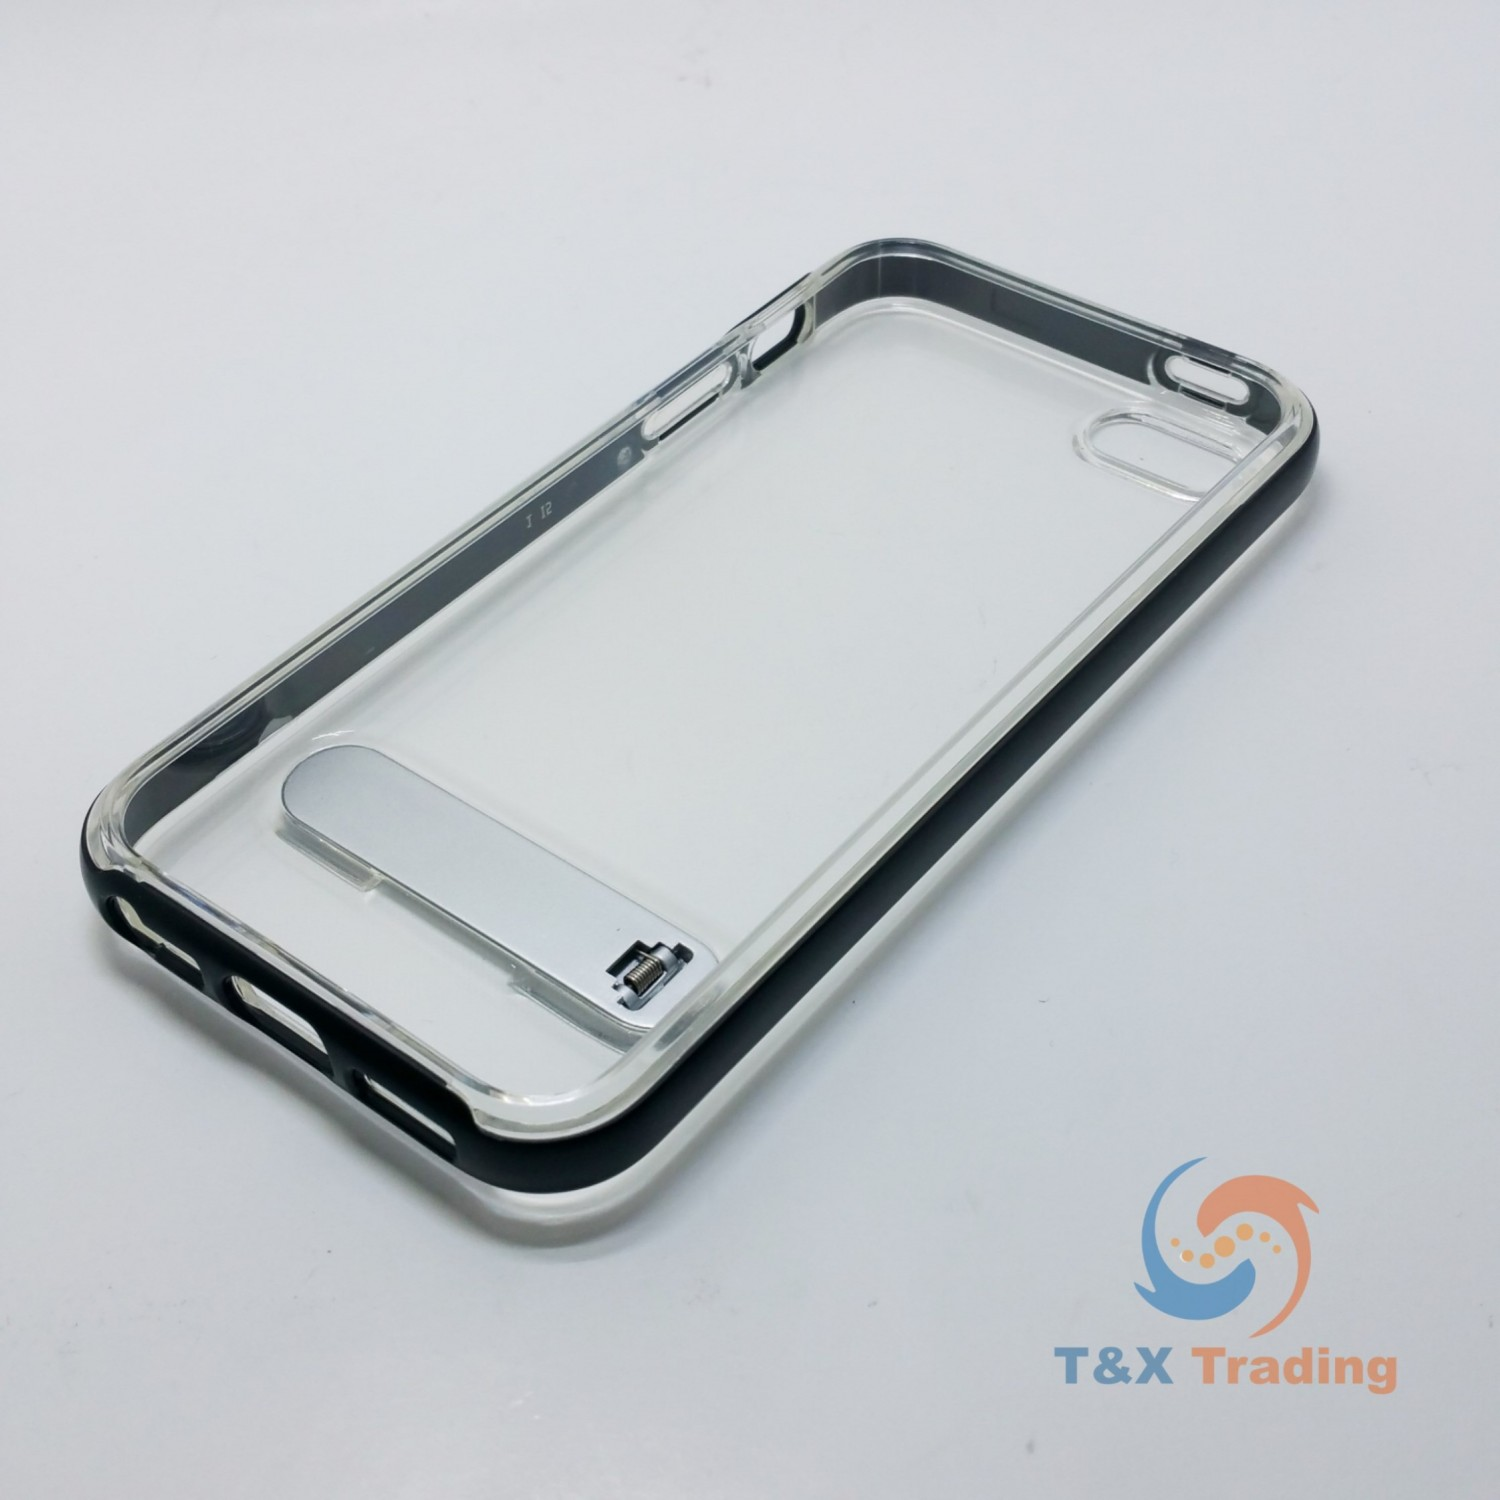 Apple Iphone 5 5s Se Tanstar Aluminum Bumper Frame Case With 5se Kickstand Series Blackblack